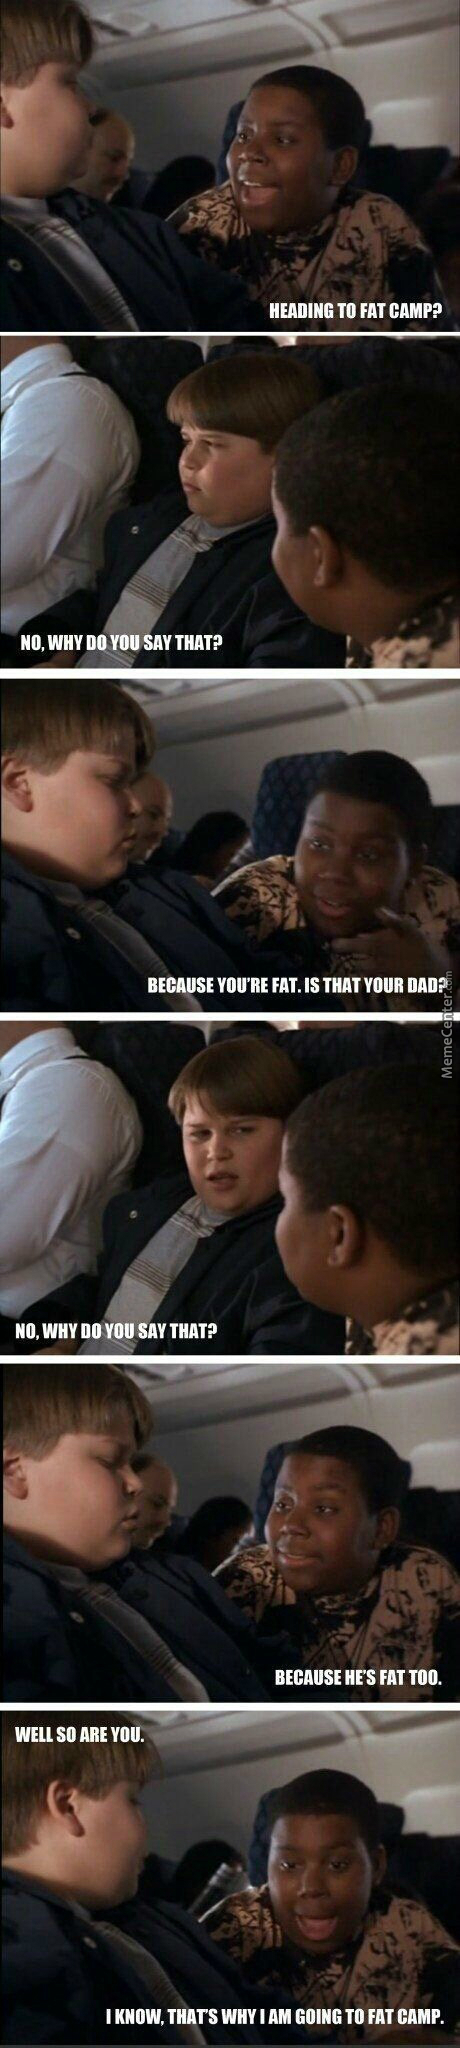 Where's The Black Kids Dad? (Movie: Heavyweights)